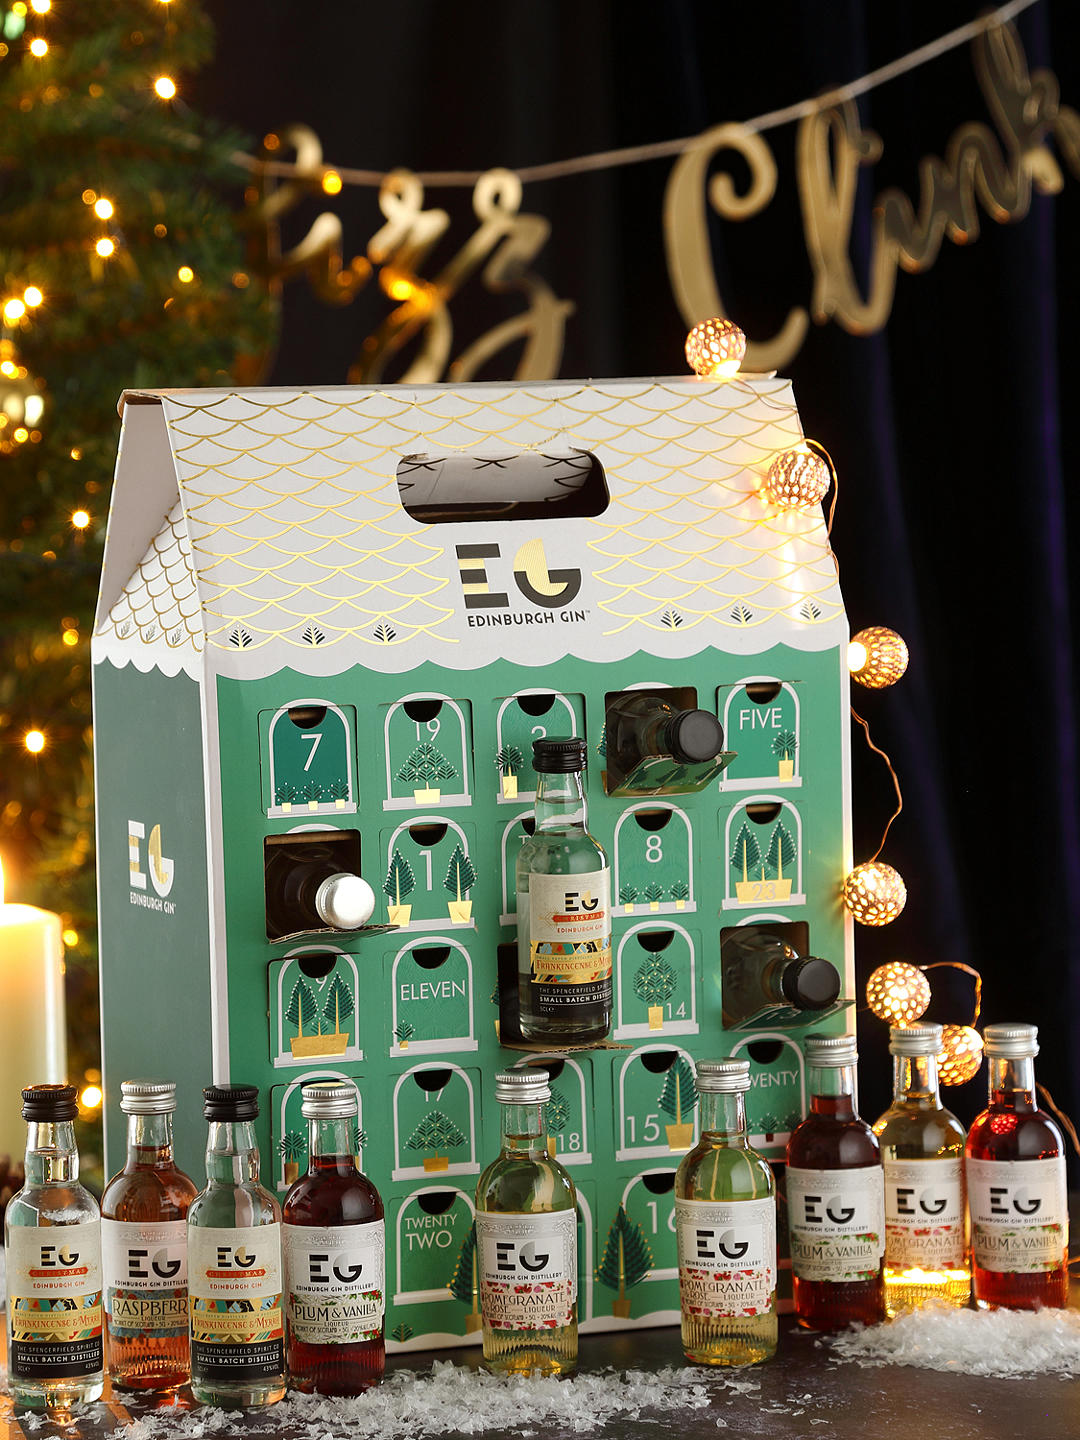 Edinburgh Gin Advent Calendar - Keep your countdown merry with the gin advent calendar from Edinburgh Gin! One for the gin connoisseurs among us, each day reveals a 5cl bottle to create the perfect G&T.£120.00